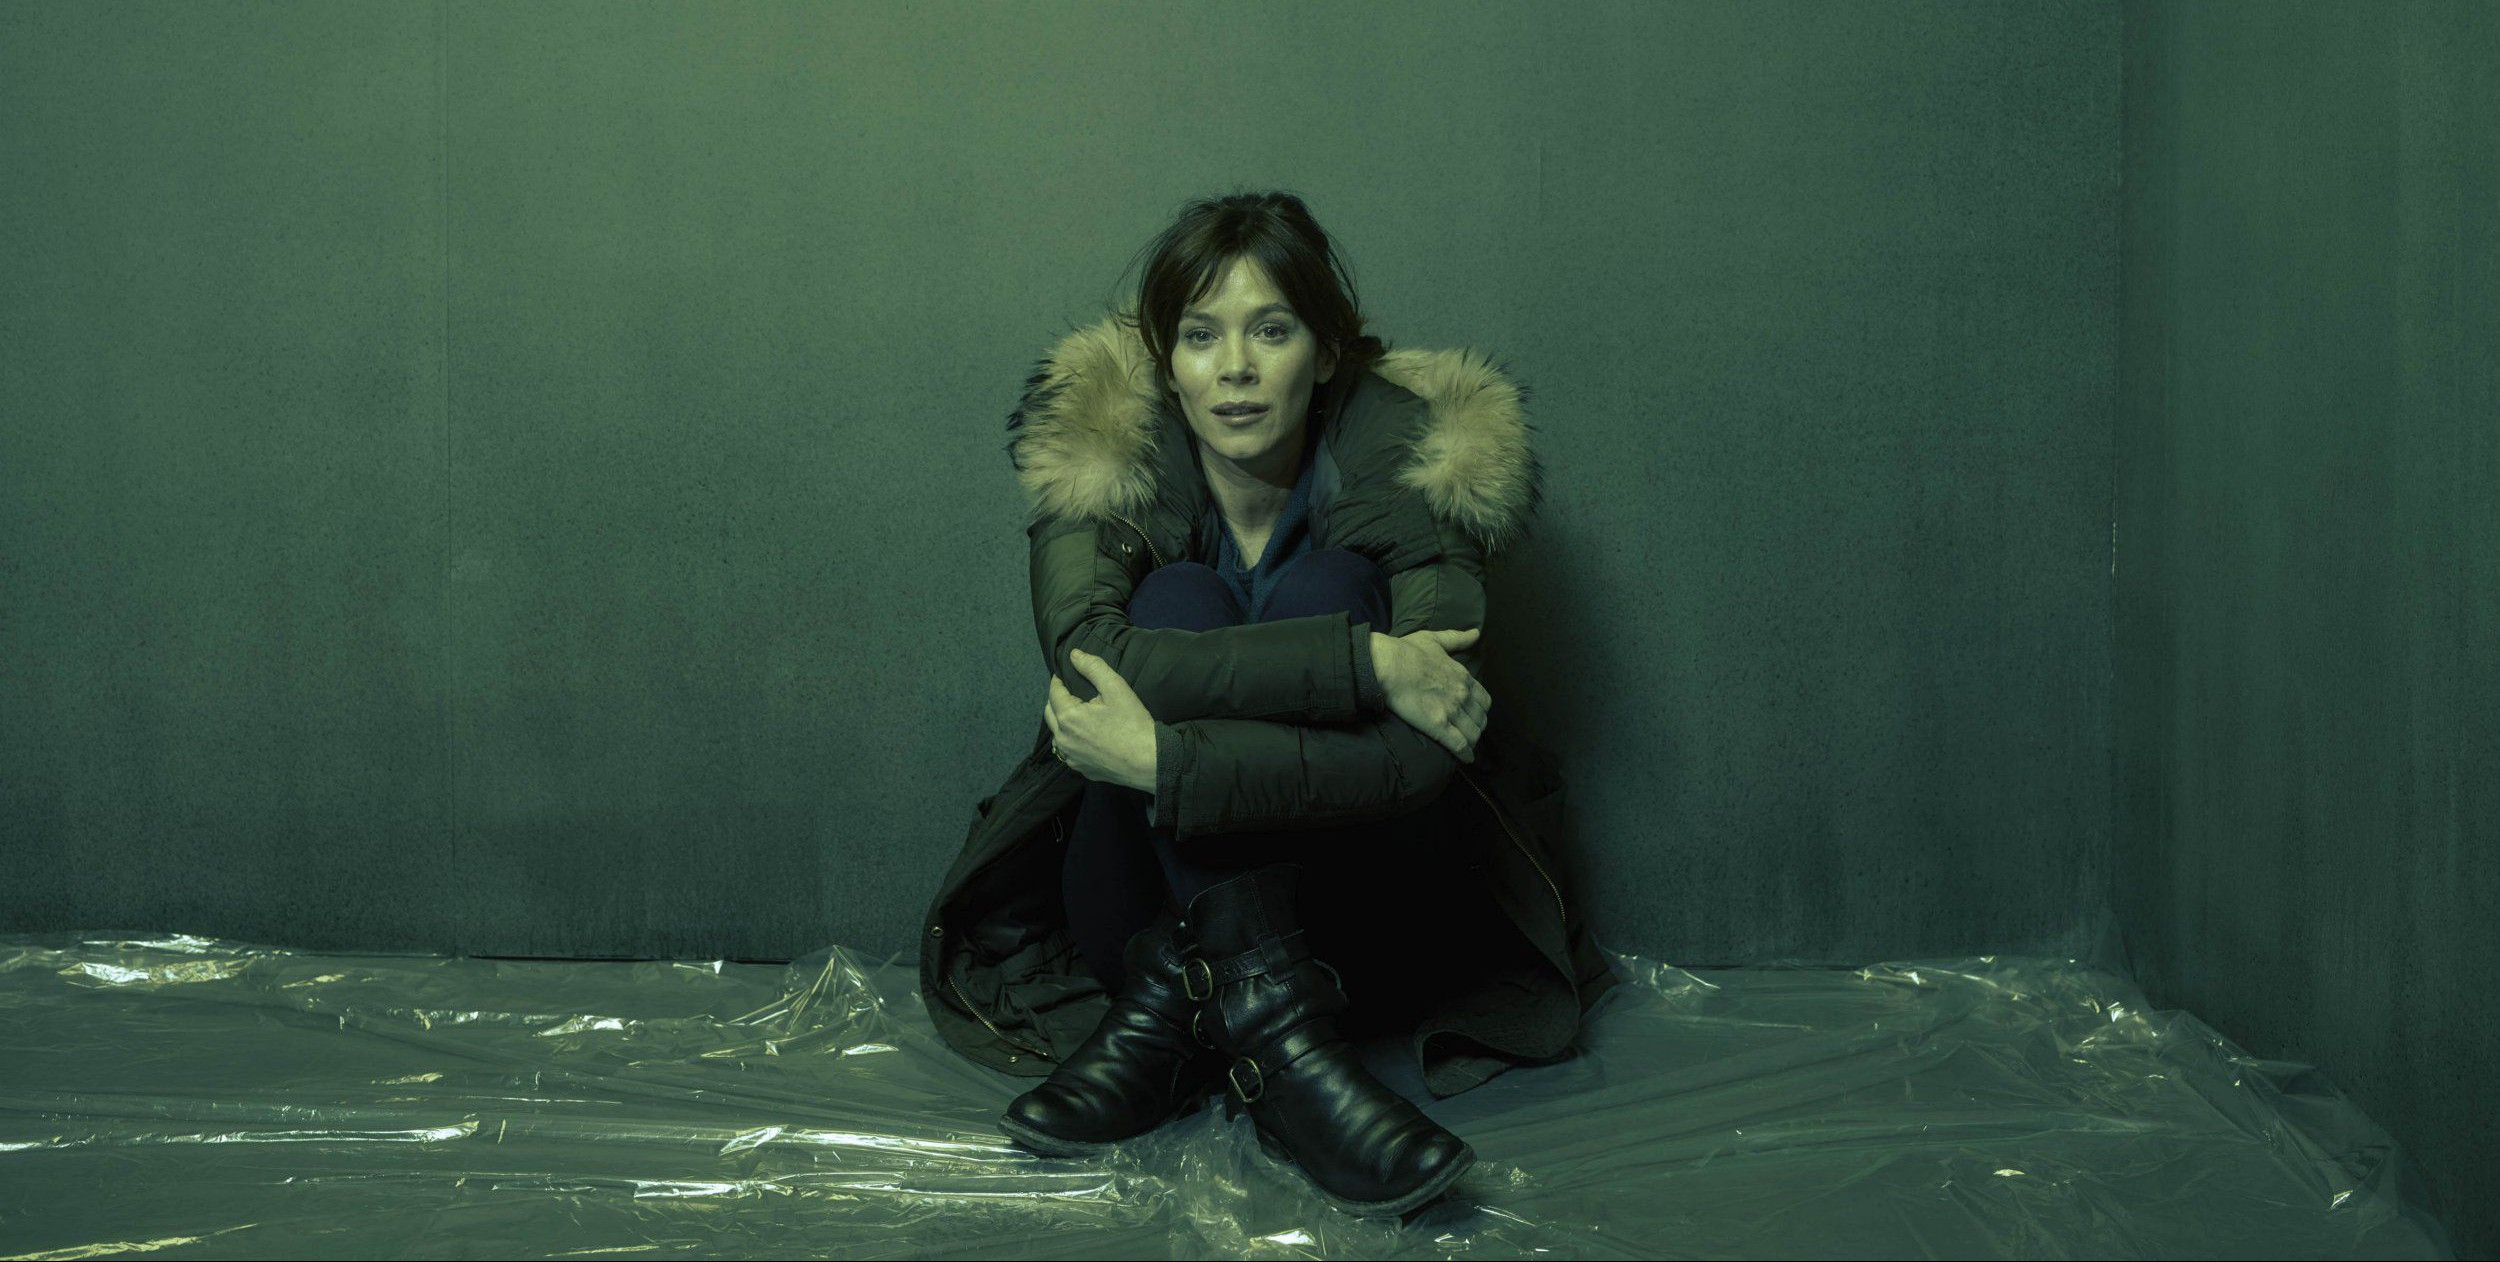 14 questions we have after watching ITV's Marcella with Anna Friel and Downton Abbey's Lady Edith Crawley